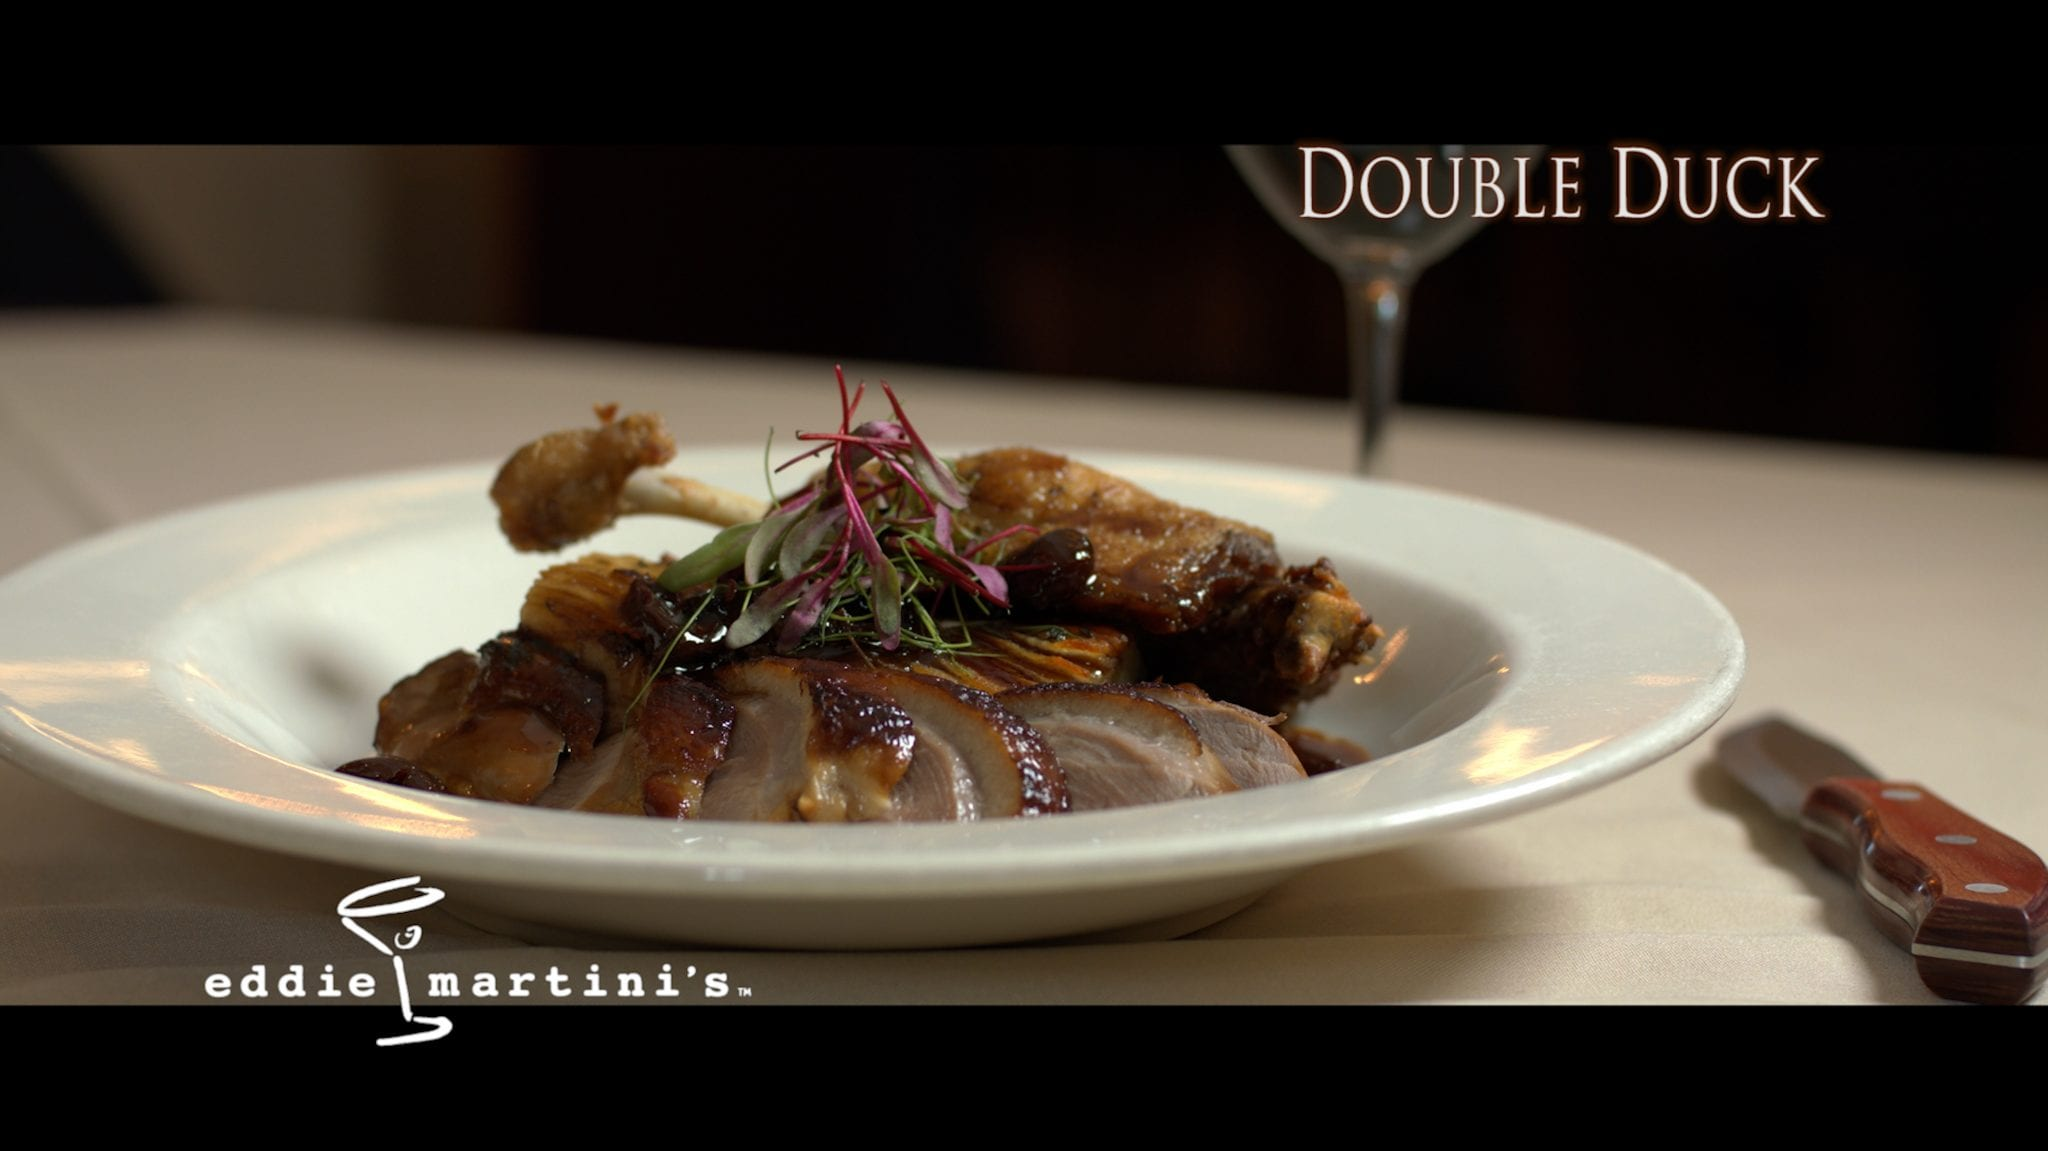 Double Duck dish from Eddie Martini's steaks, chops, and seafood in Wauwatosa, Wisconsin